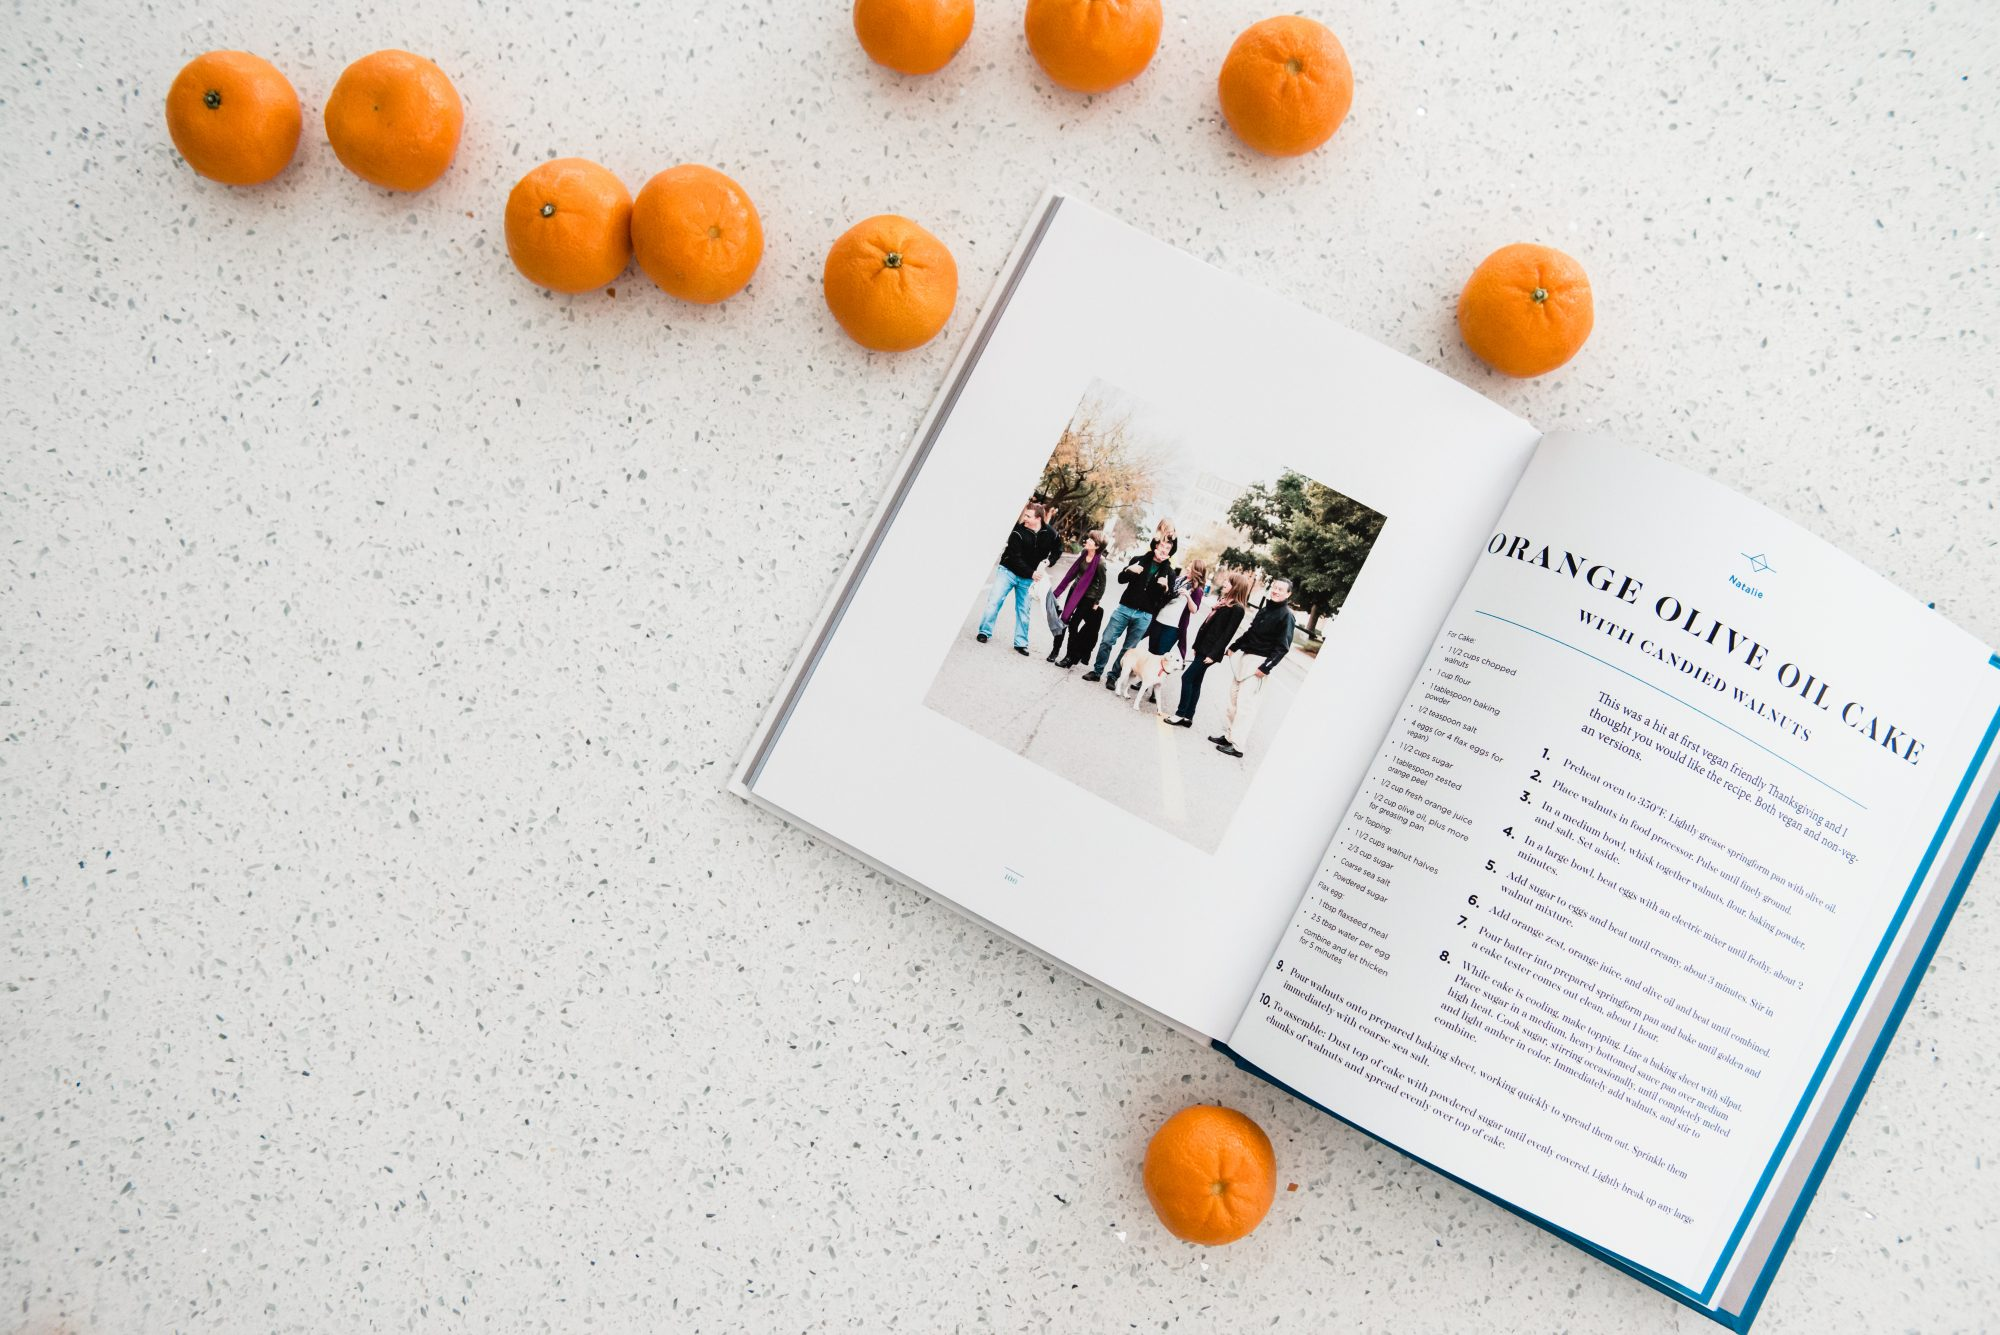 Honey & Hive Custom Cookbook, from $120